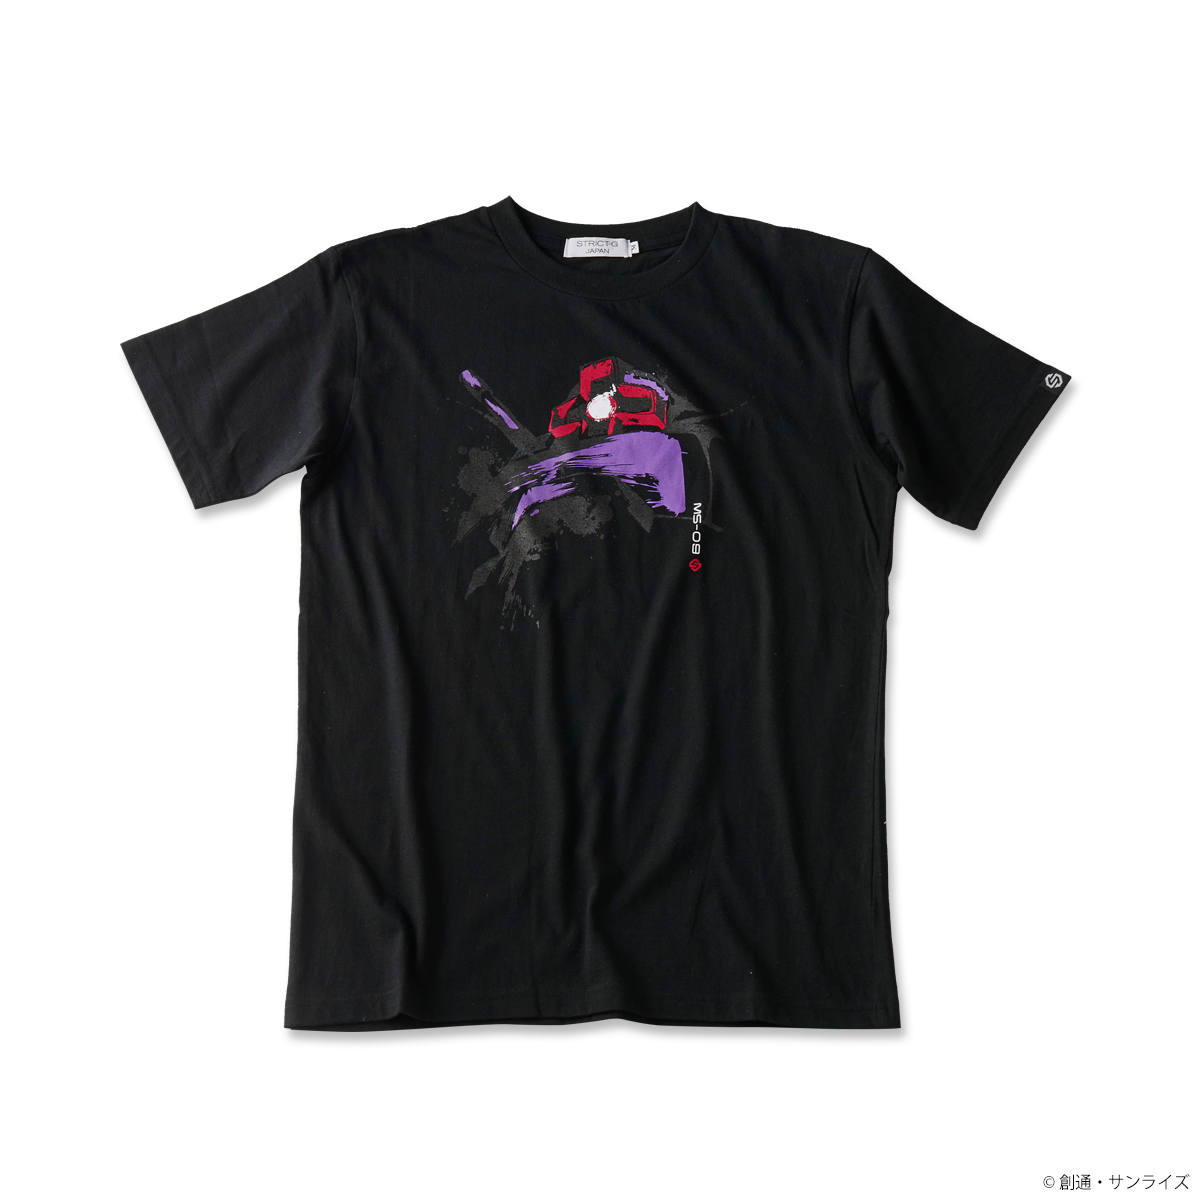 Dom T-shirt—Mobile Suit Gundam/STRICT-G JAPAN Collaboration